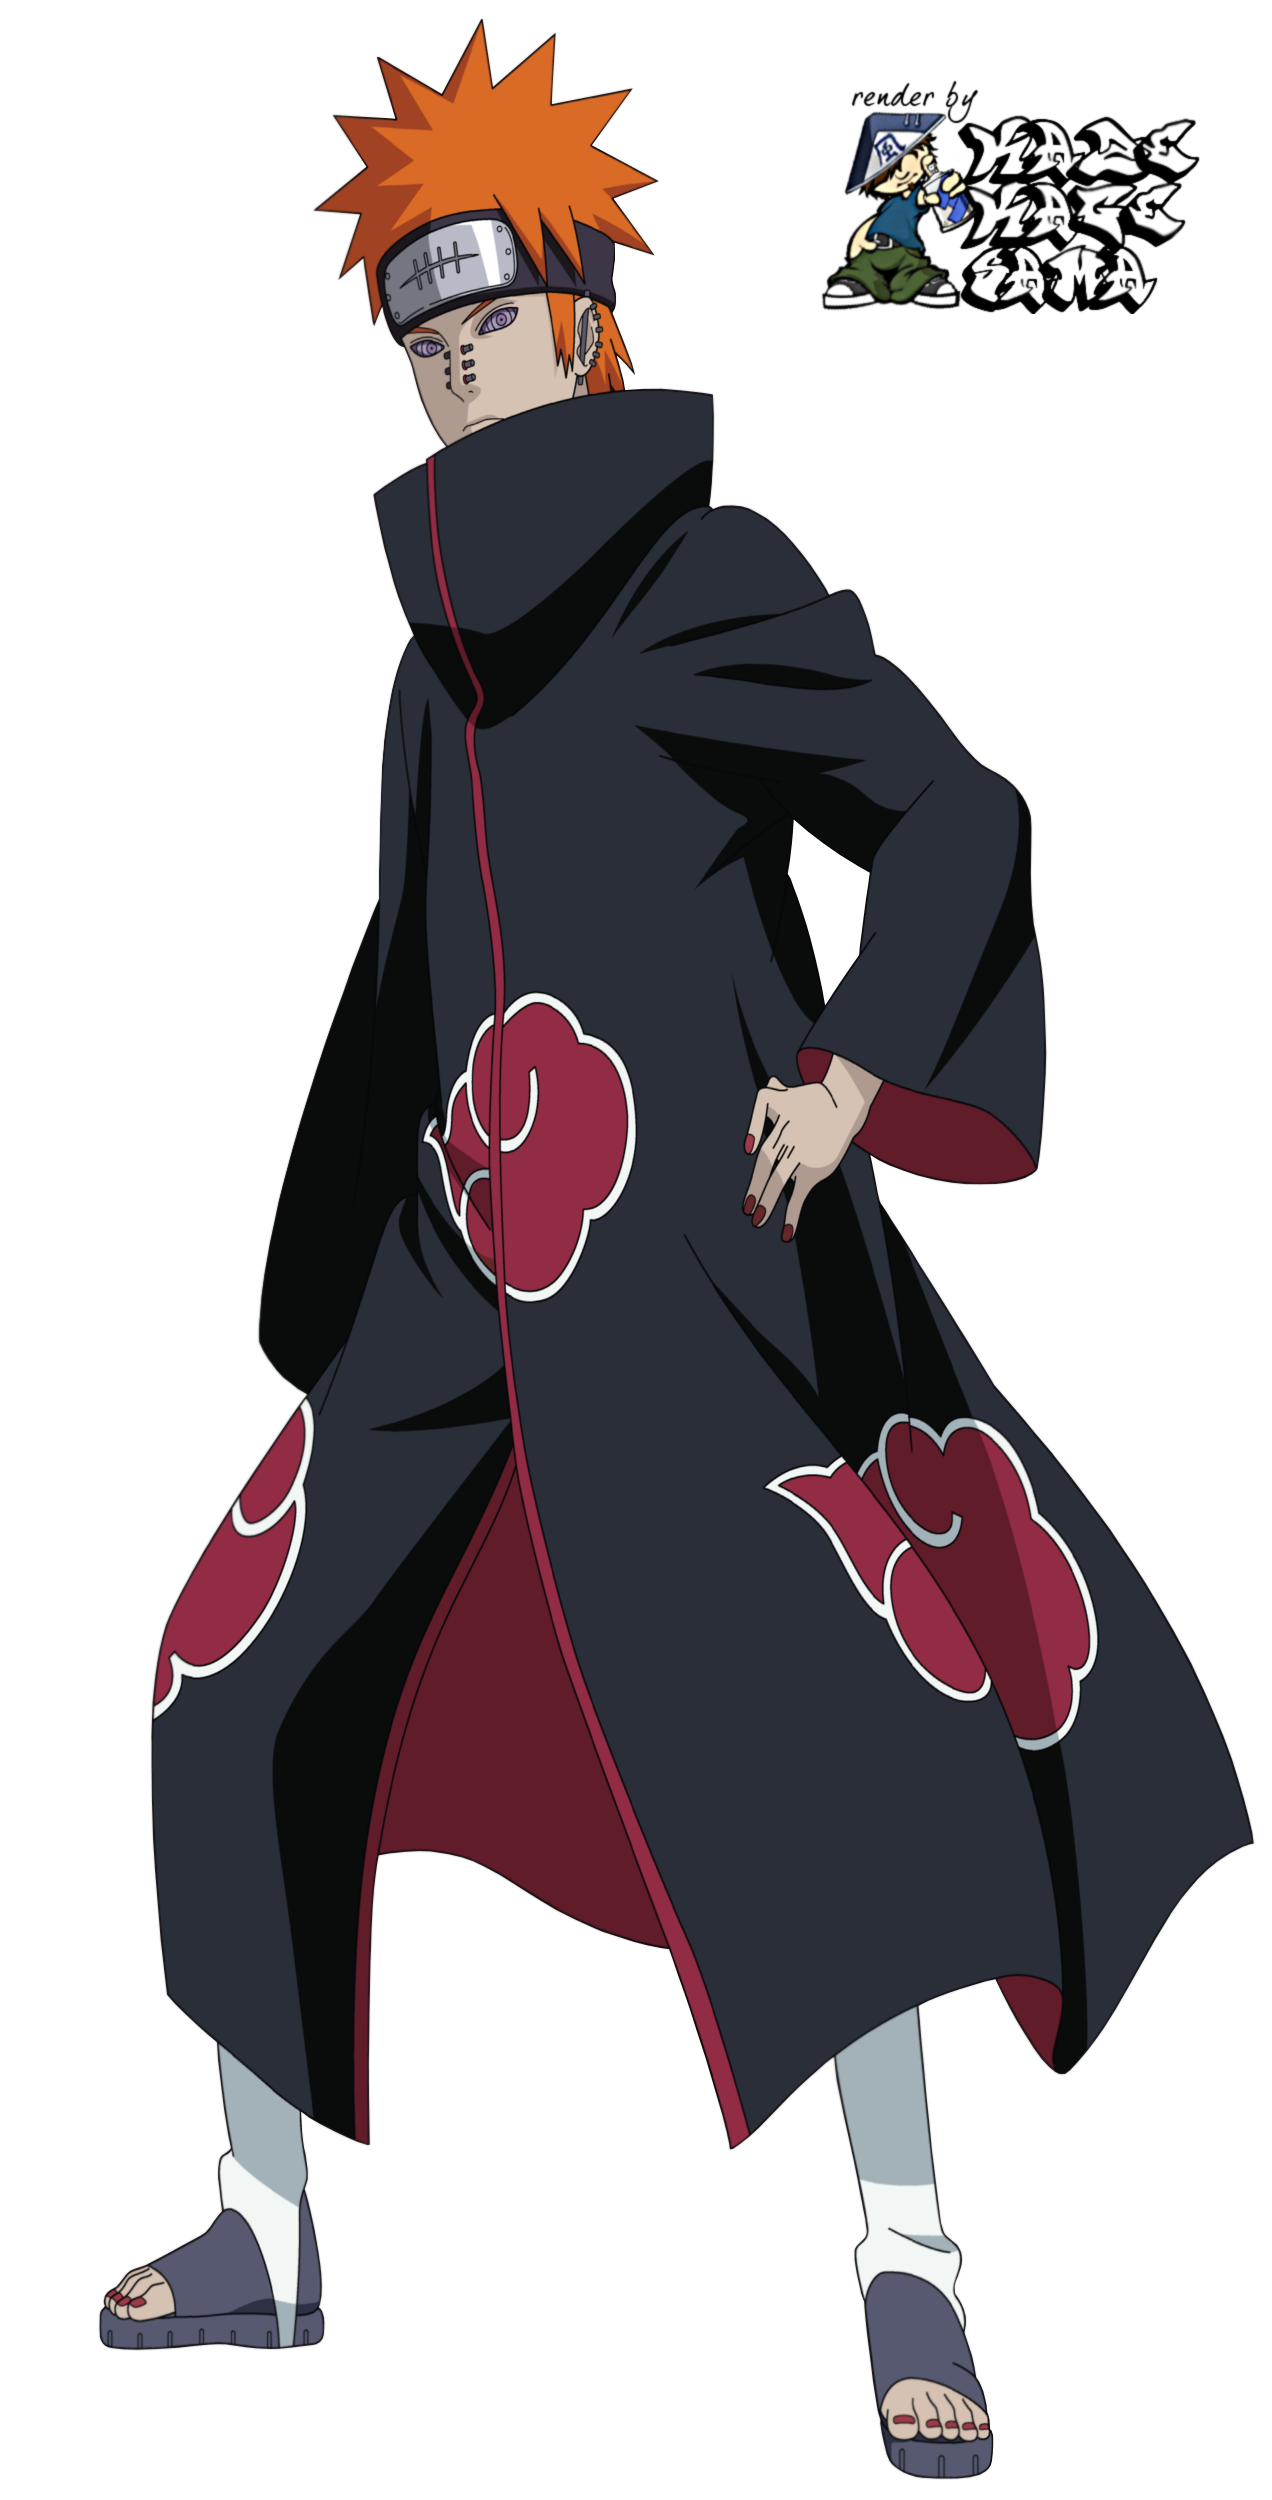 Naruto Pain PNG Images Transparent Free Download.